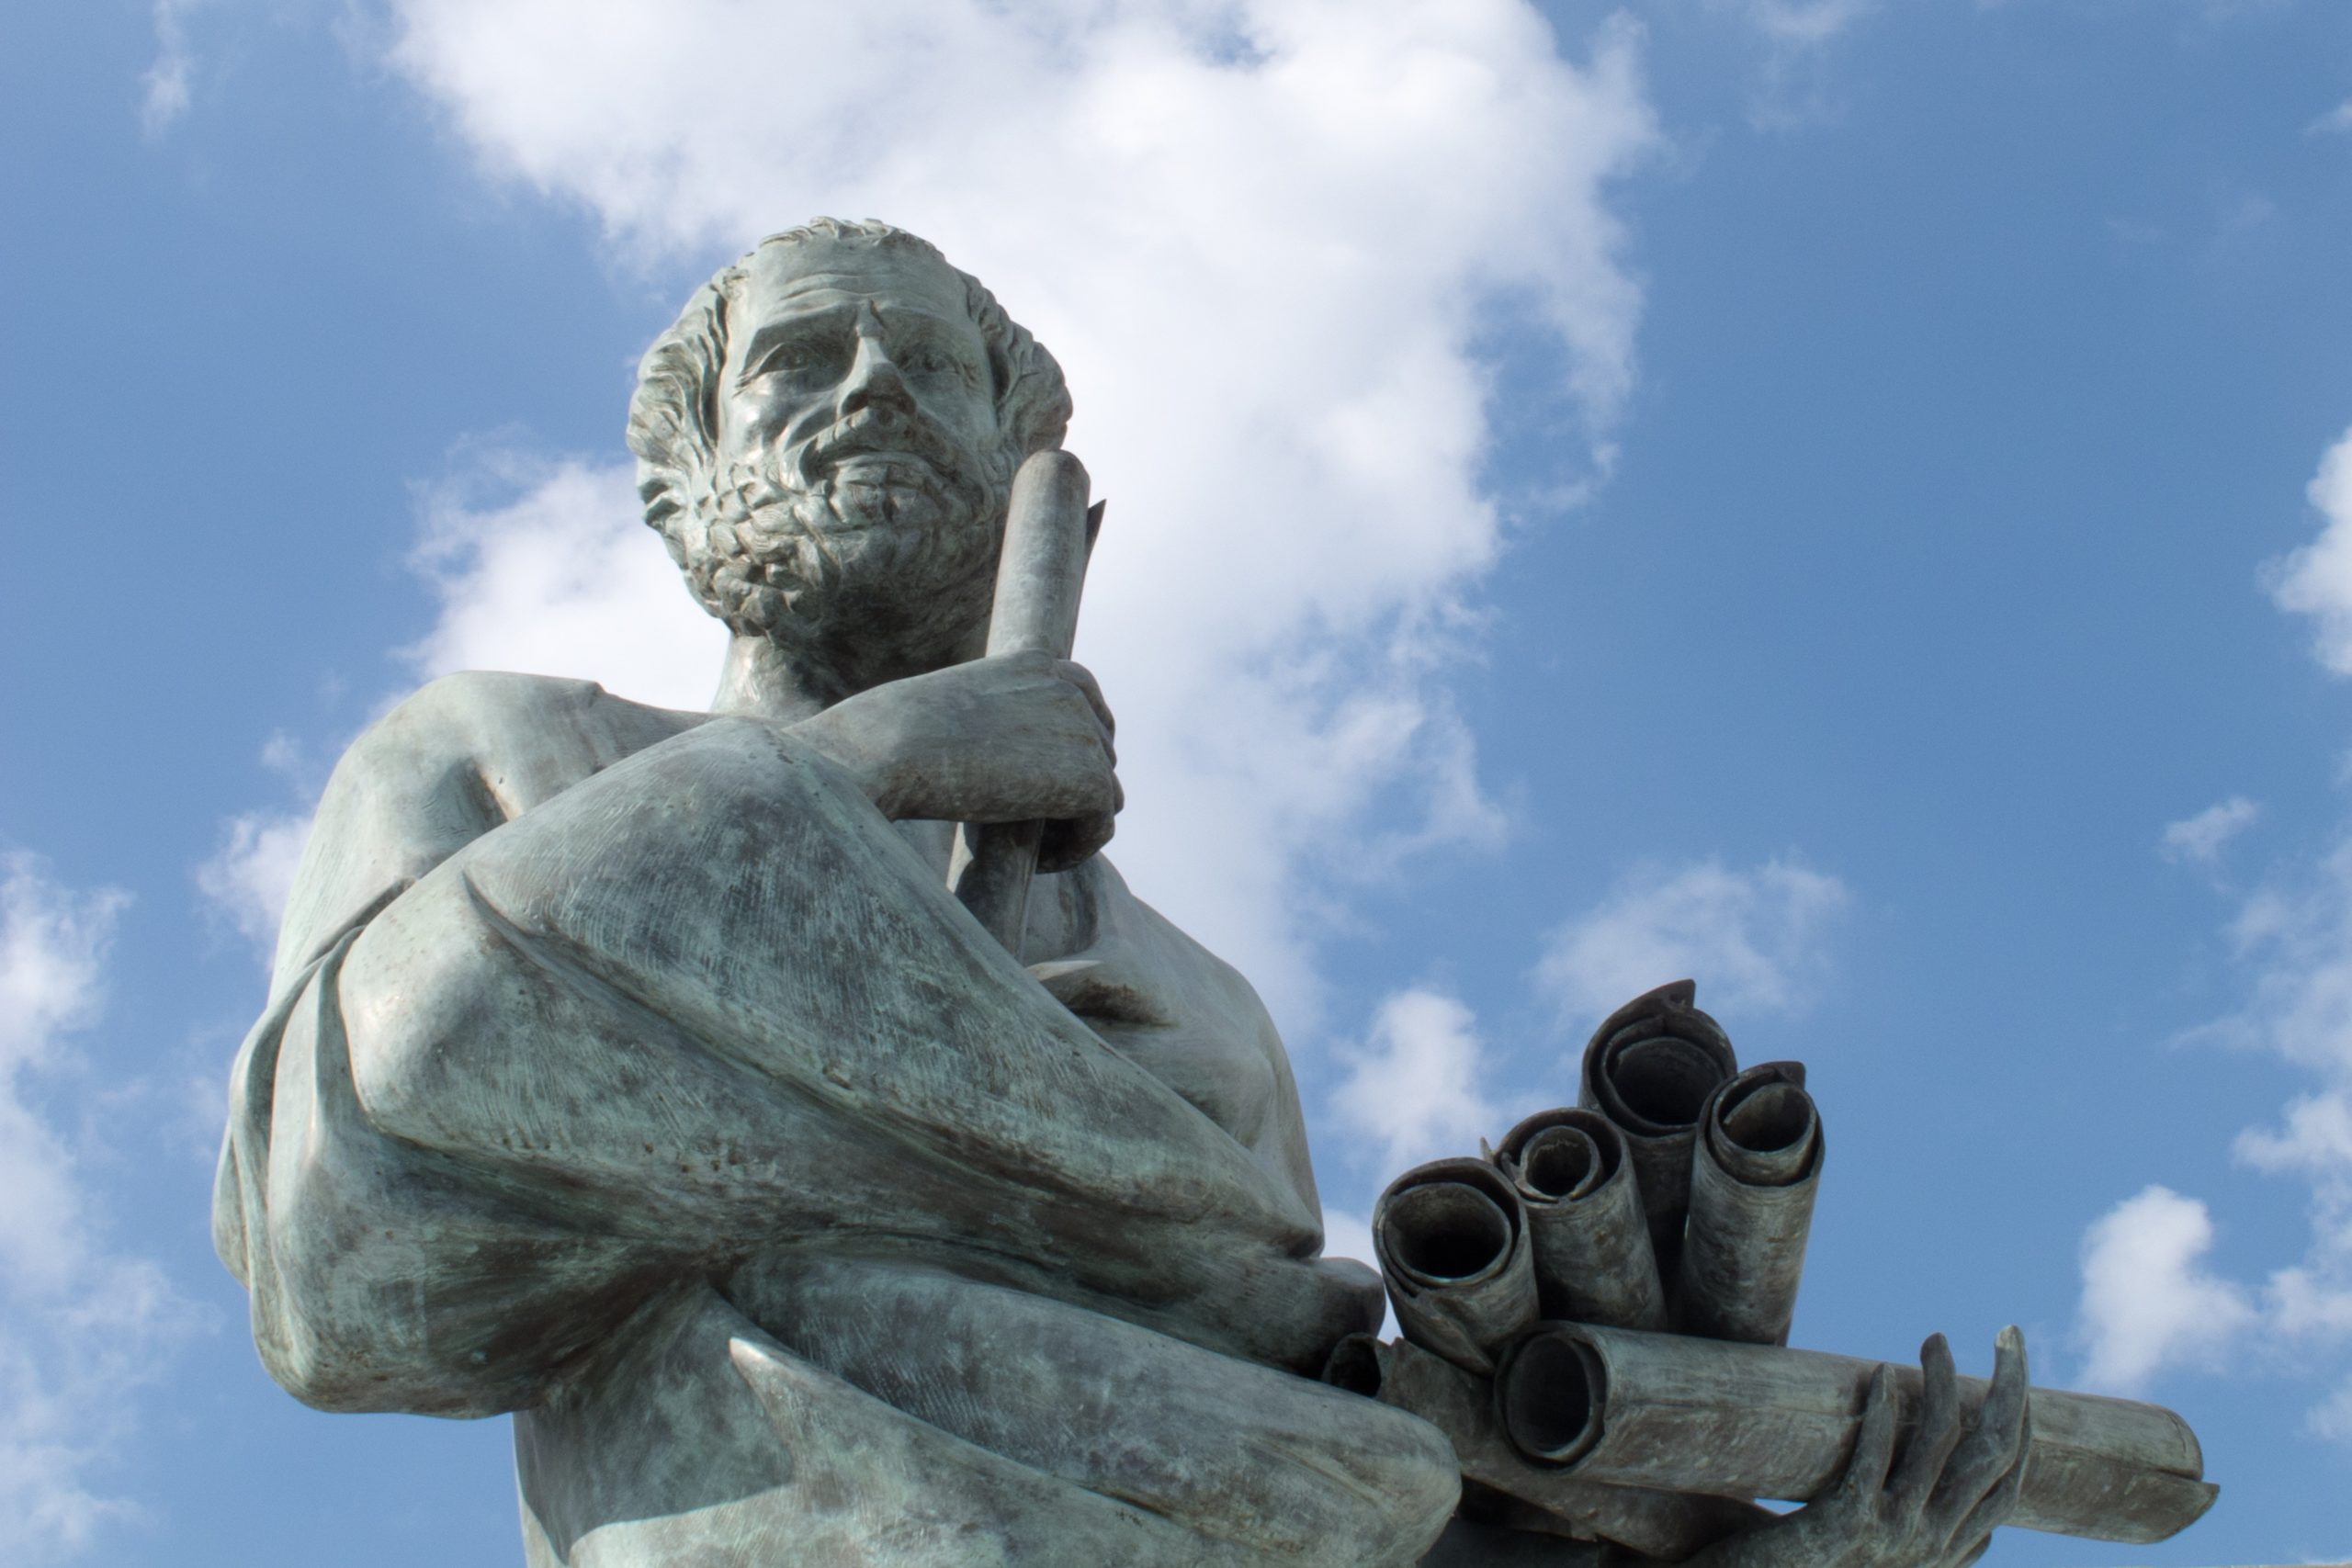 Statue of Socrates, Greek philosopher